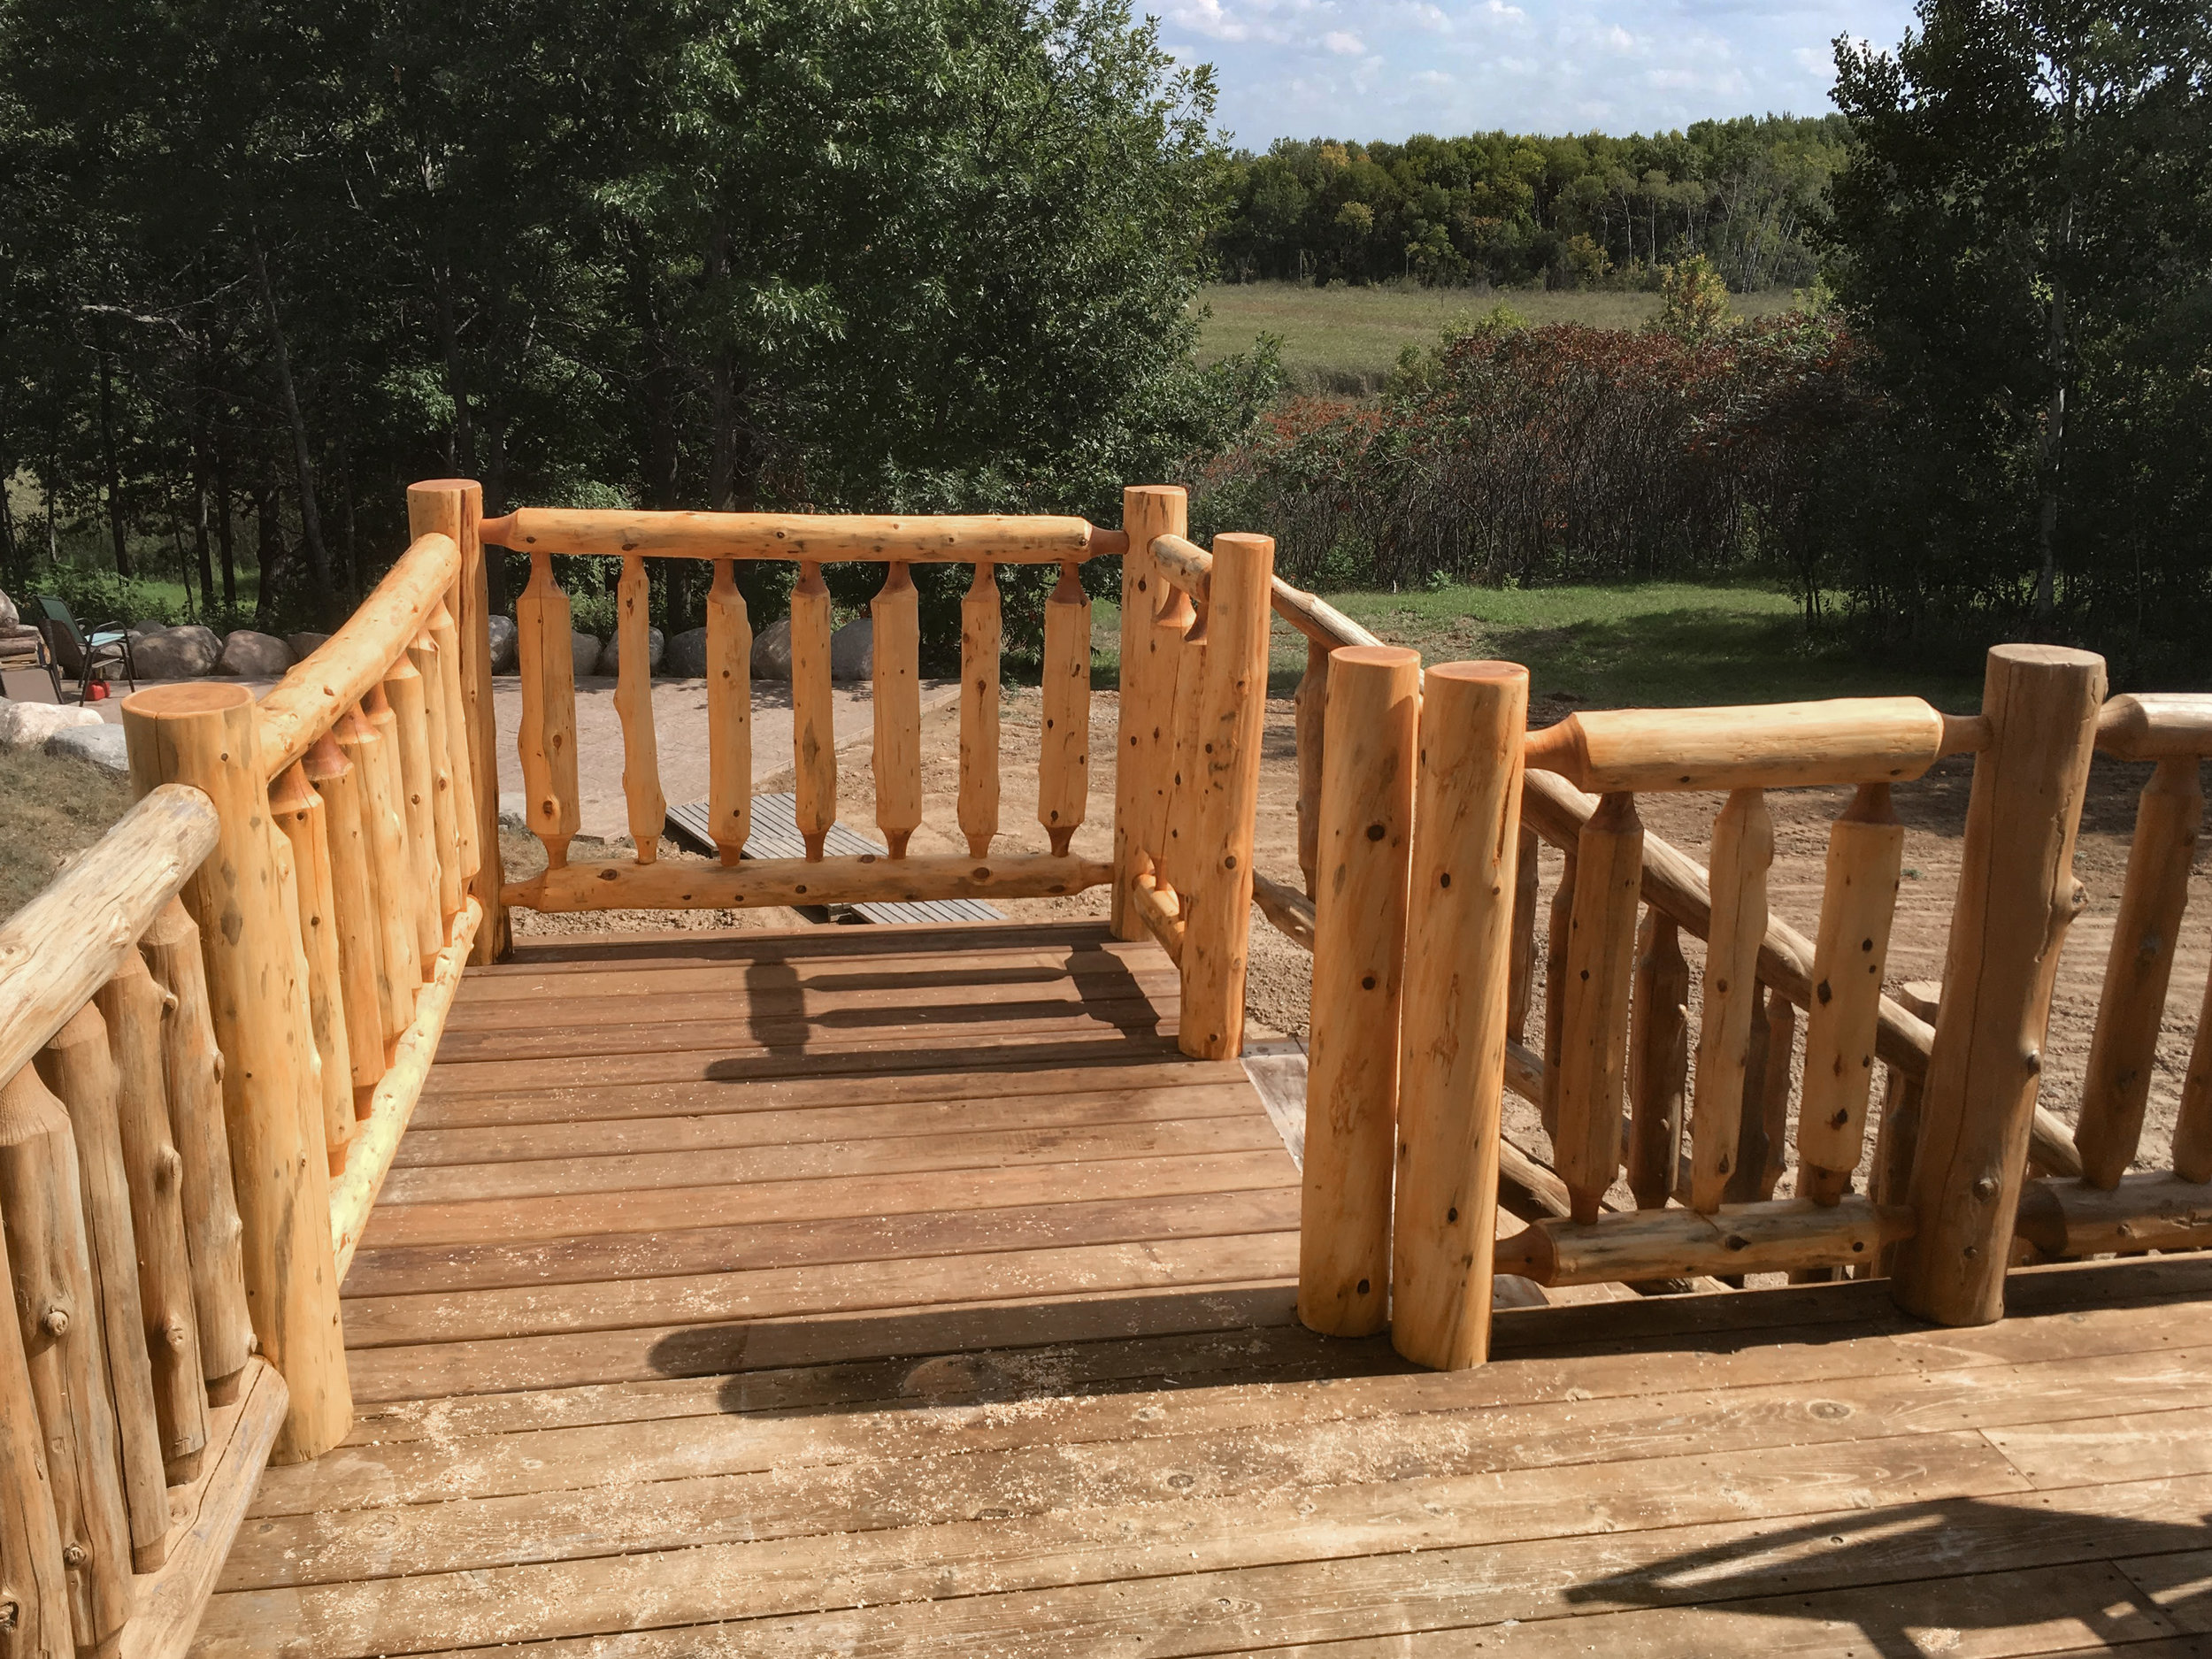 Cedar Spindle Log Railing by Soderlund's Wood Mill in Chisago City, Minnesota